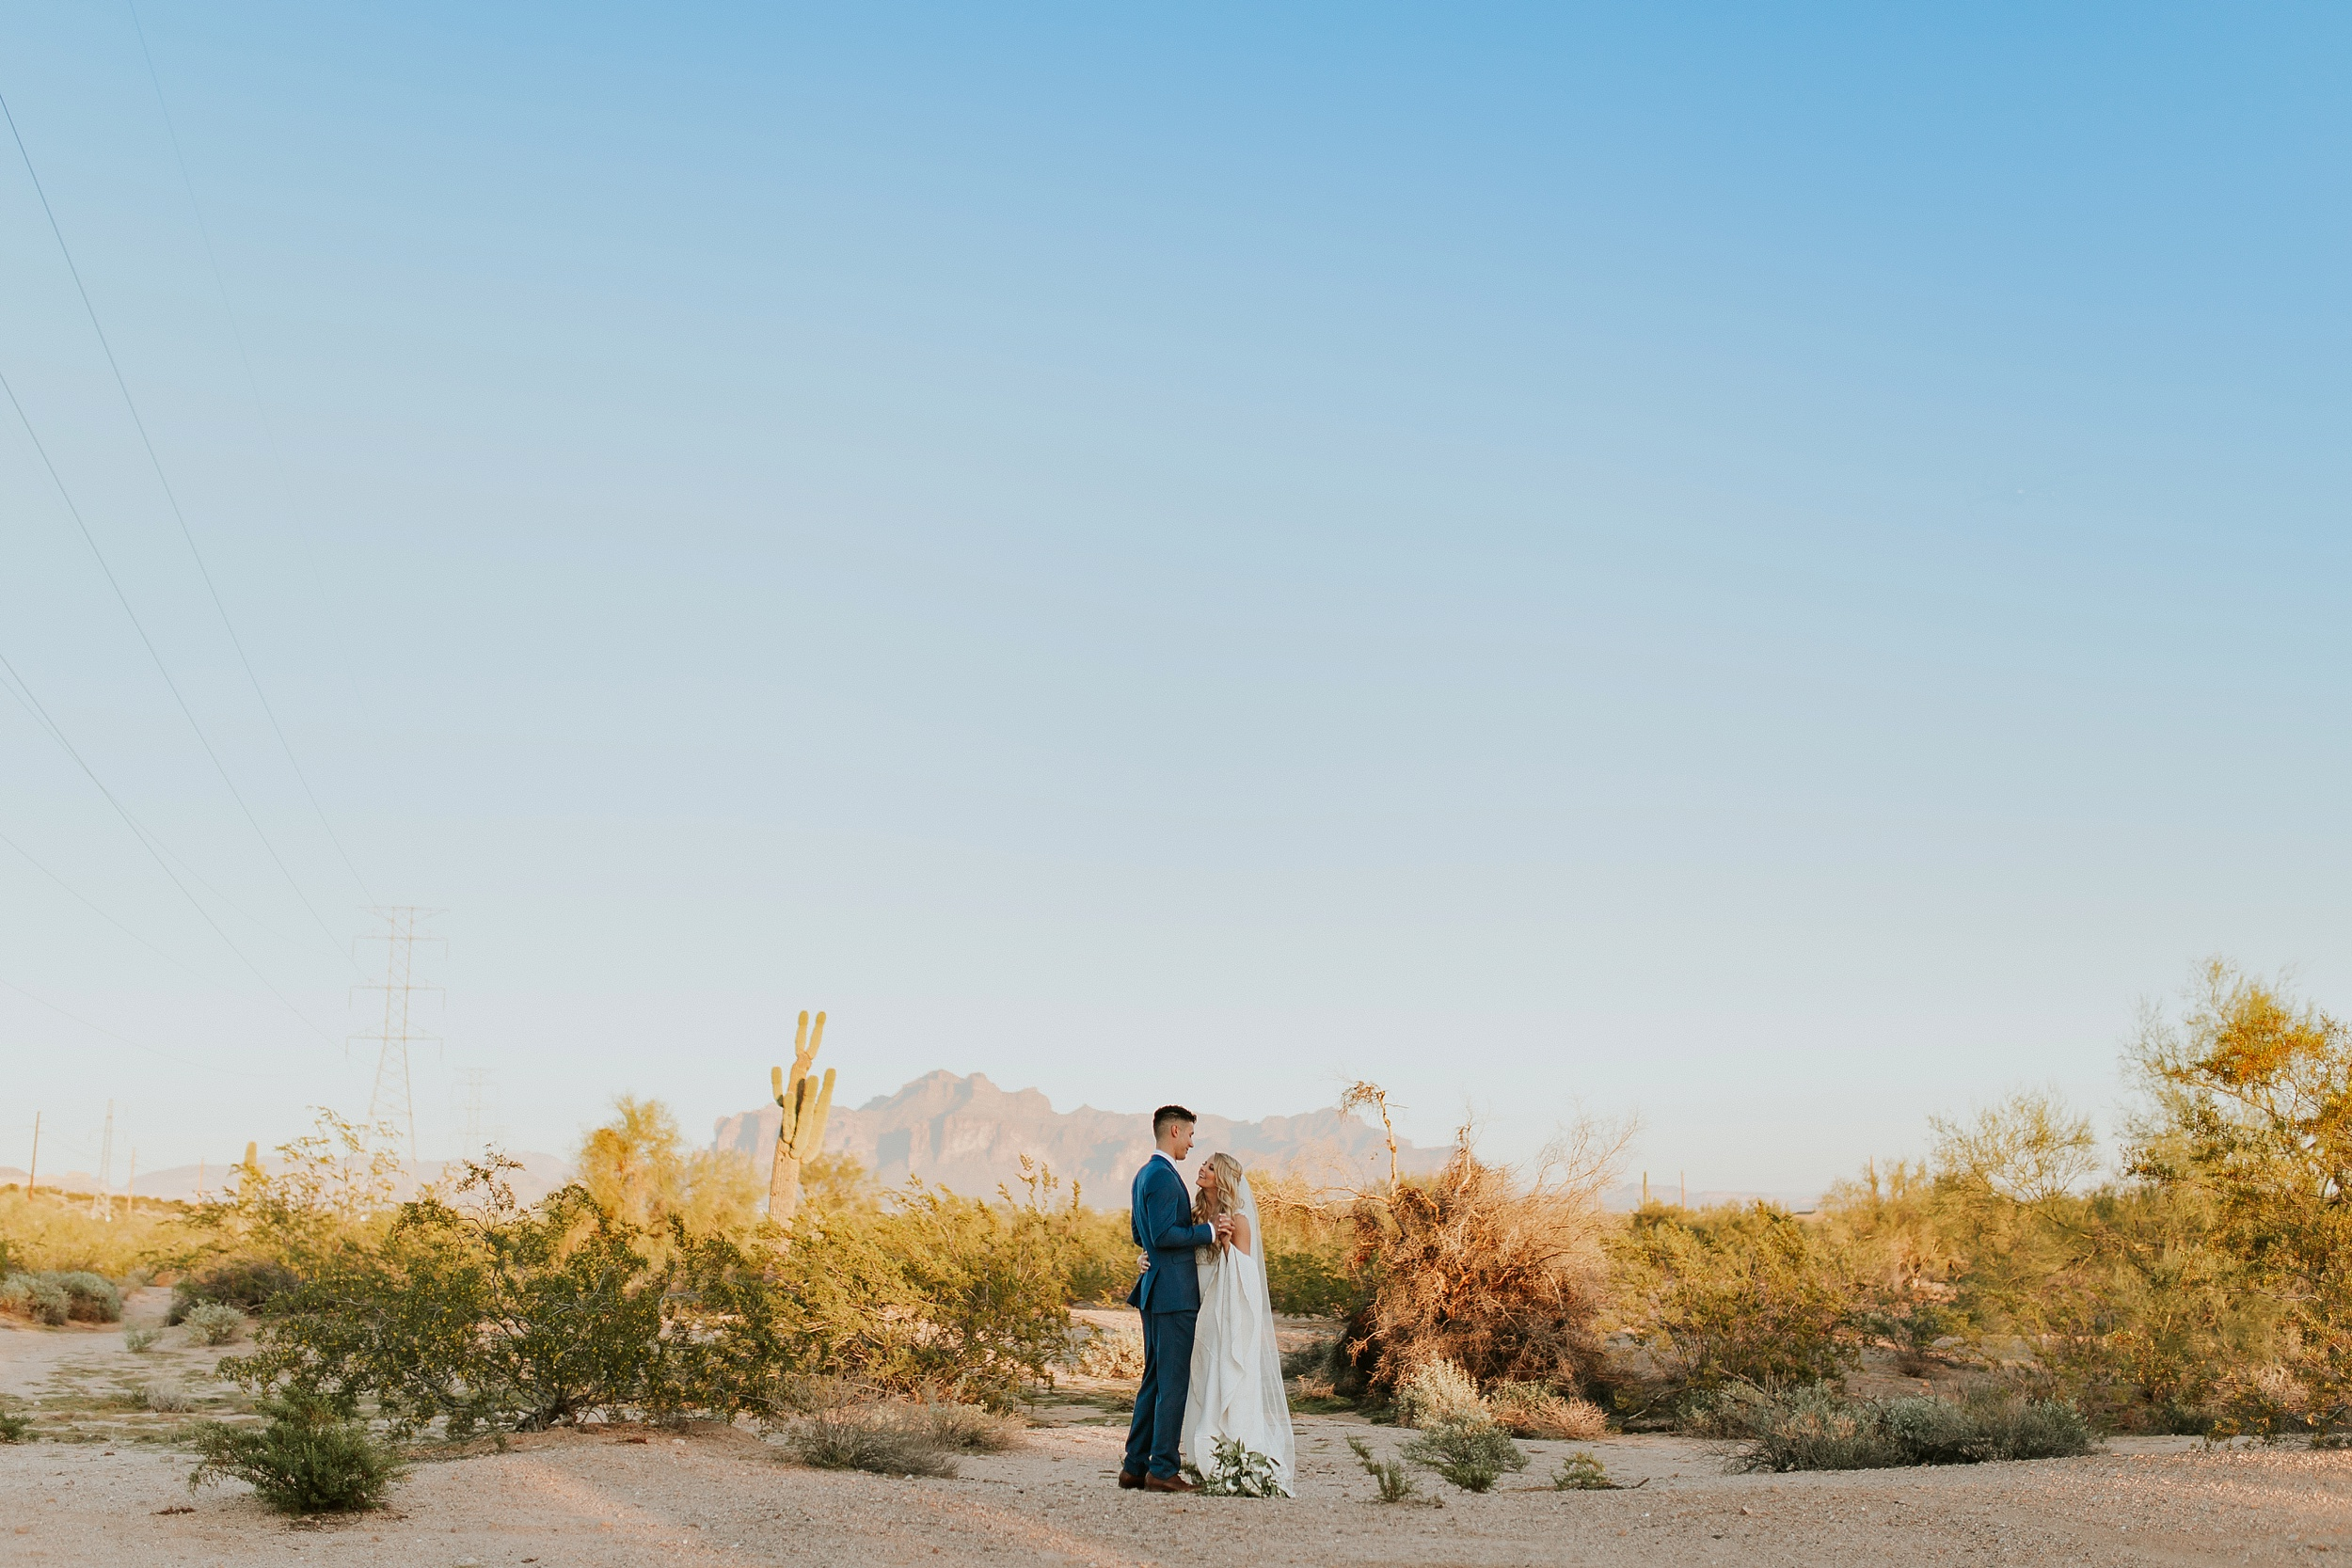 Meg+Bubba_Wedding_Bride+Groom_Portraits_Arizona-133.jpg